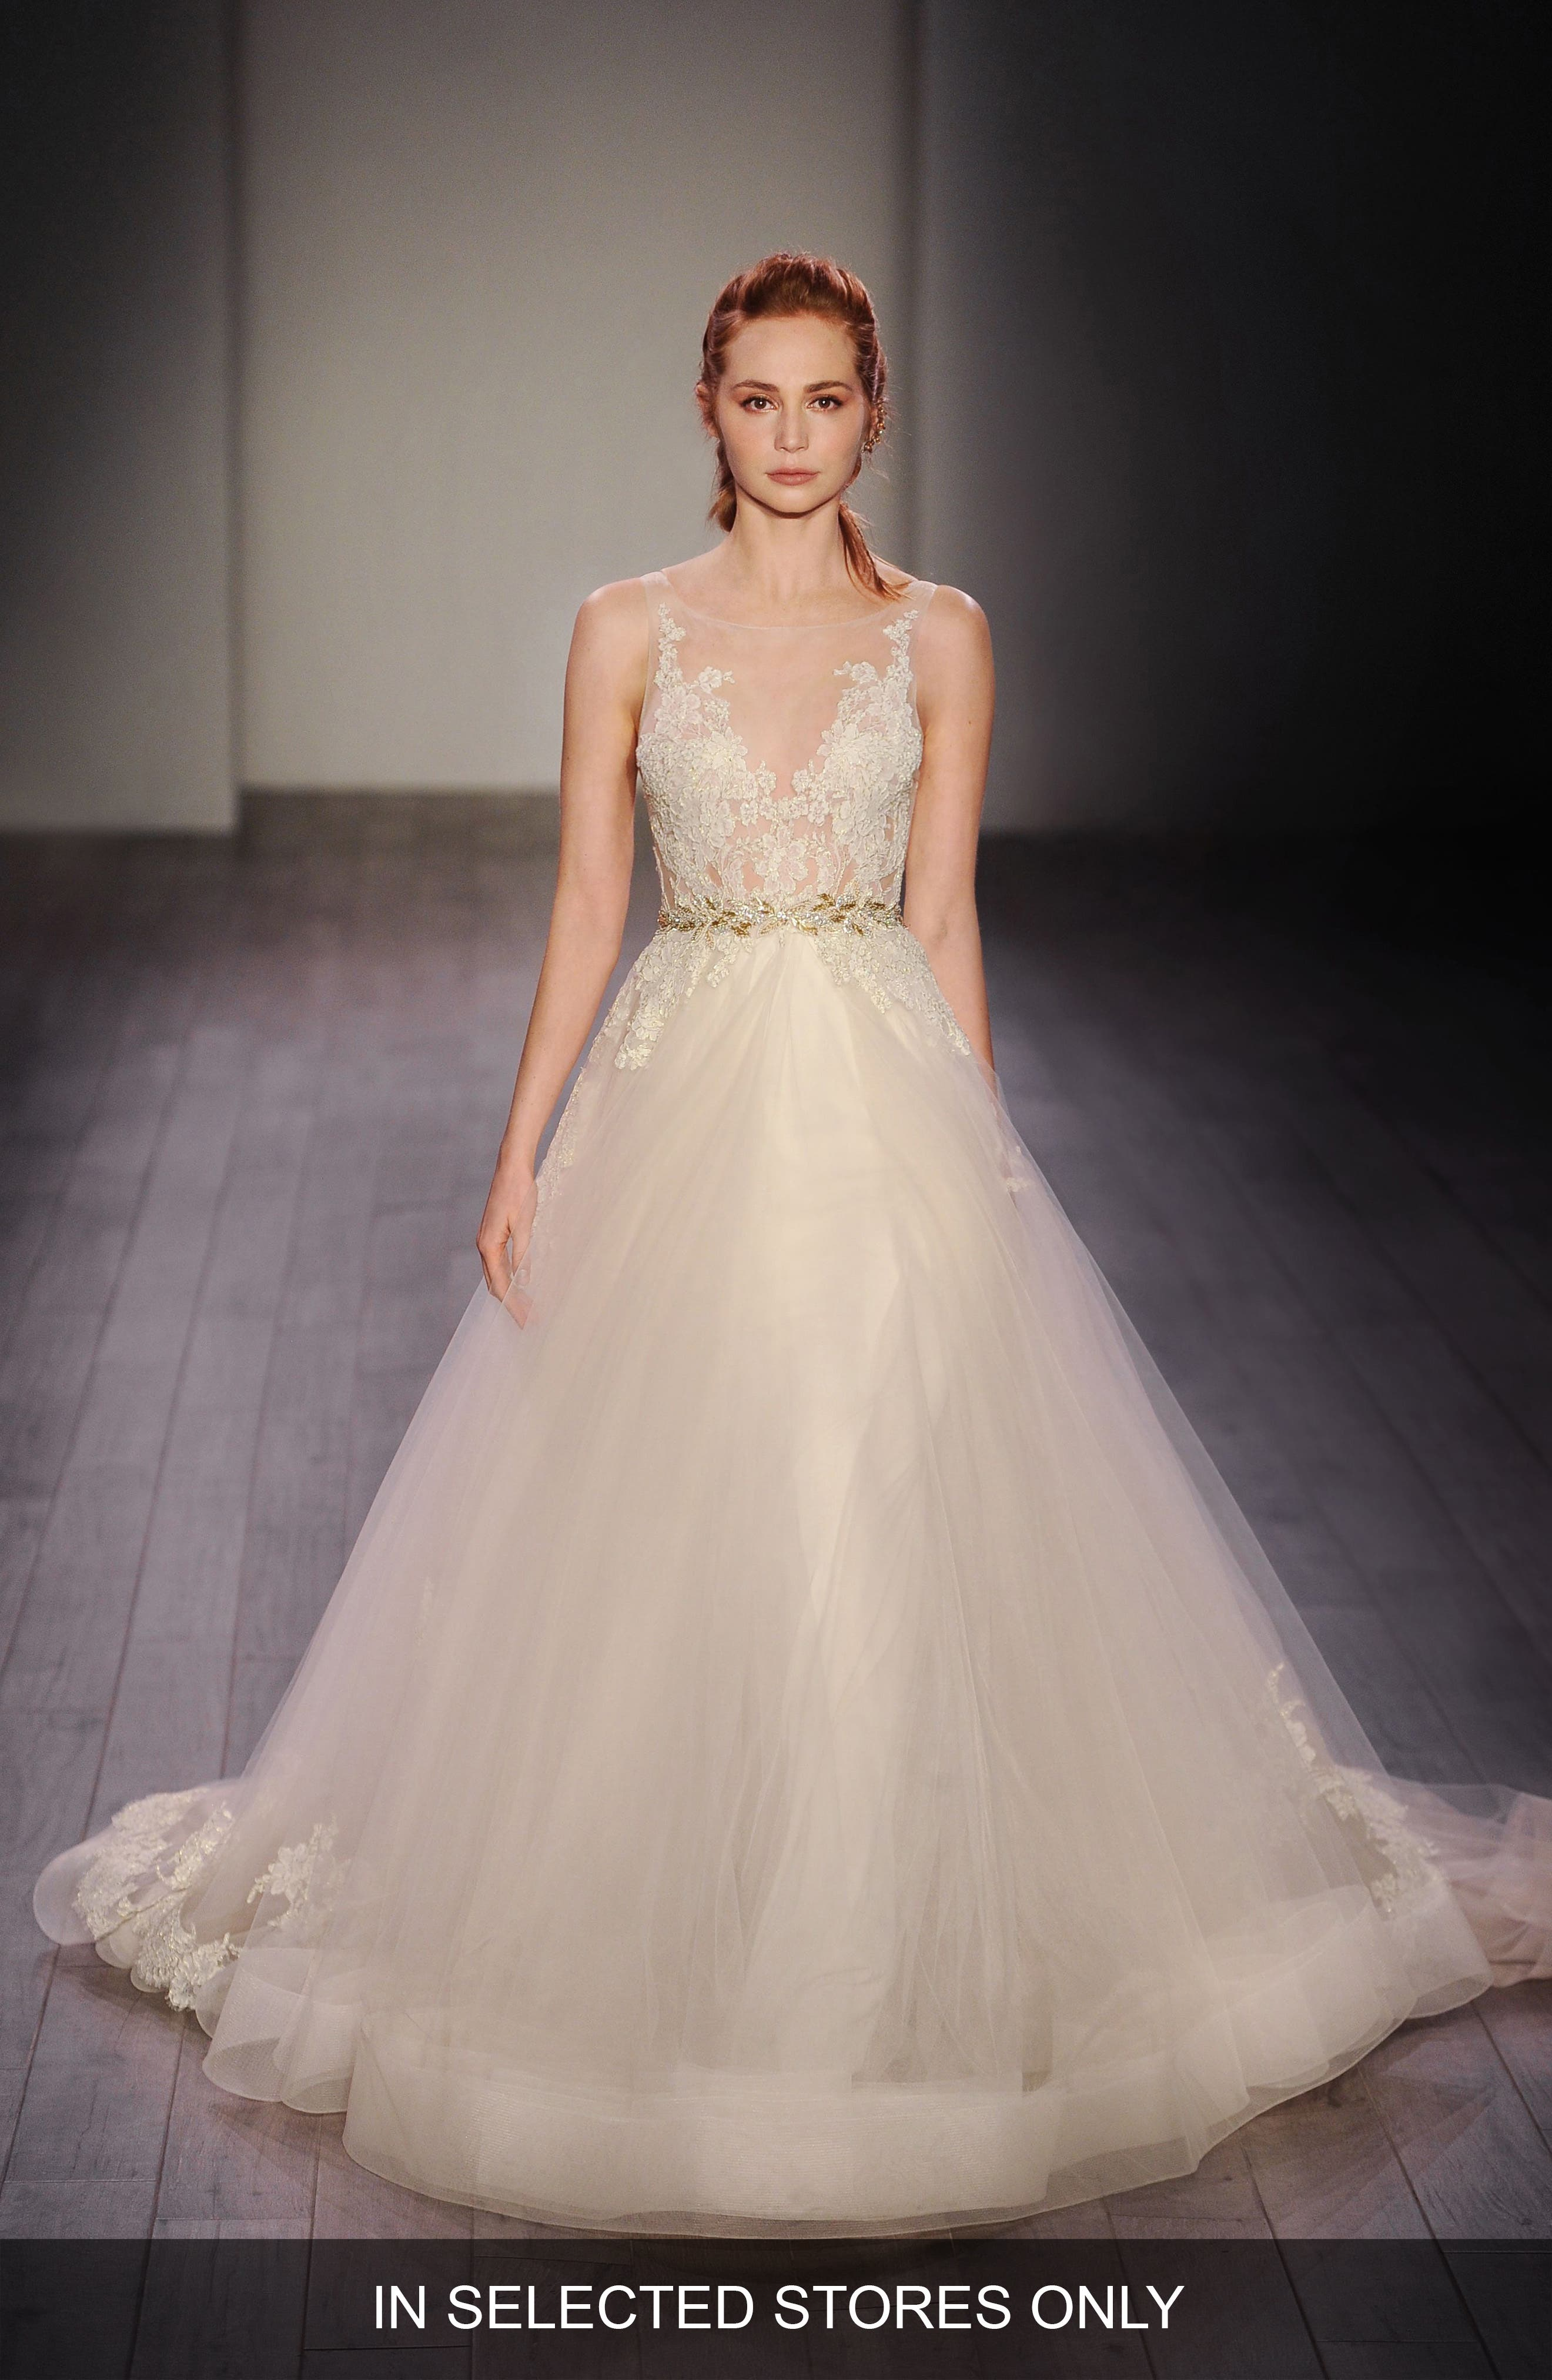 Lace Appliqué Tulle Ballgown Dress,                         Main,                         color, Ivory/Gold/Champagne